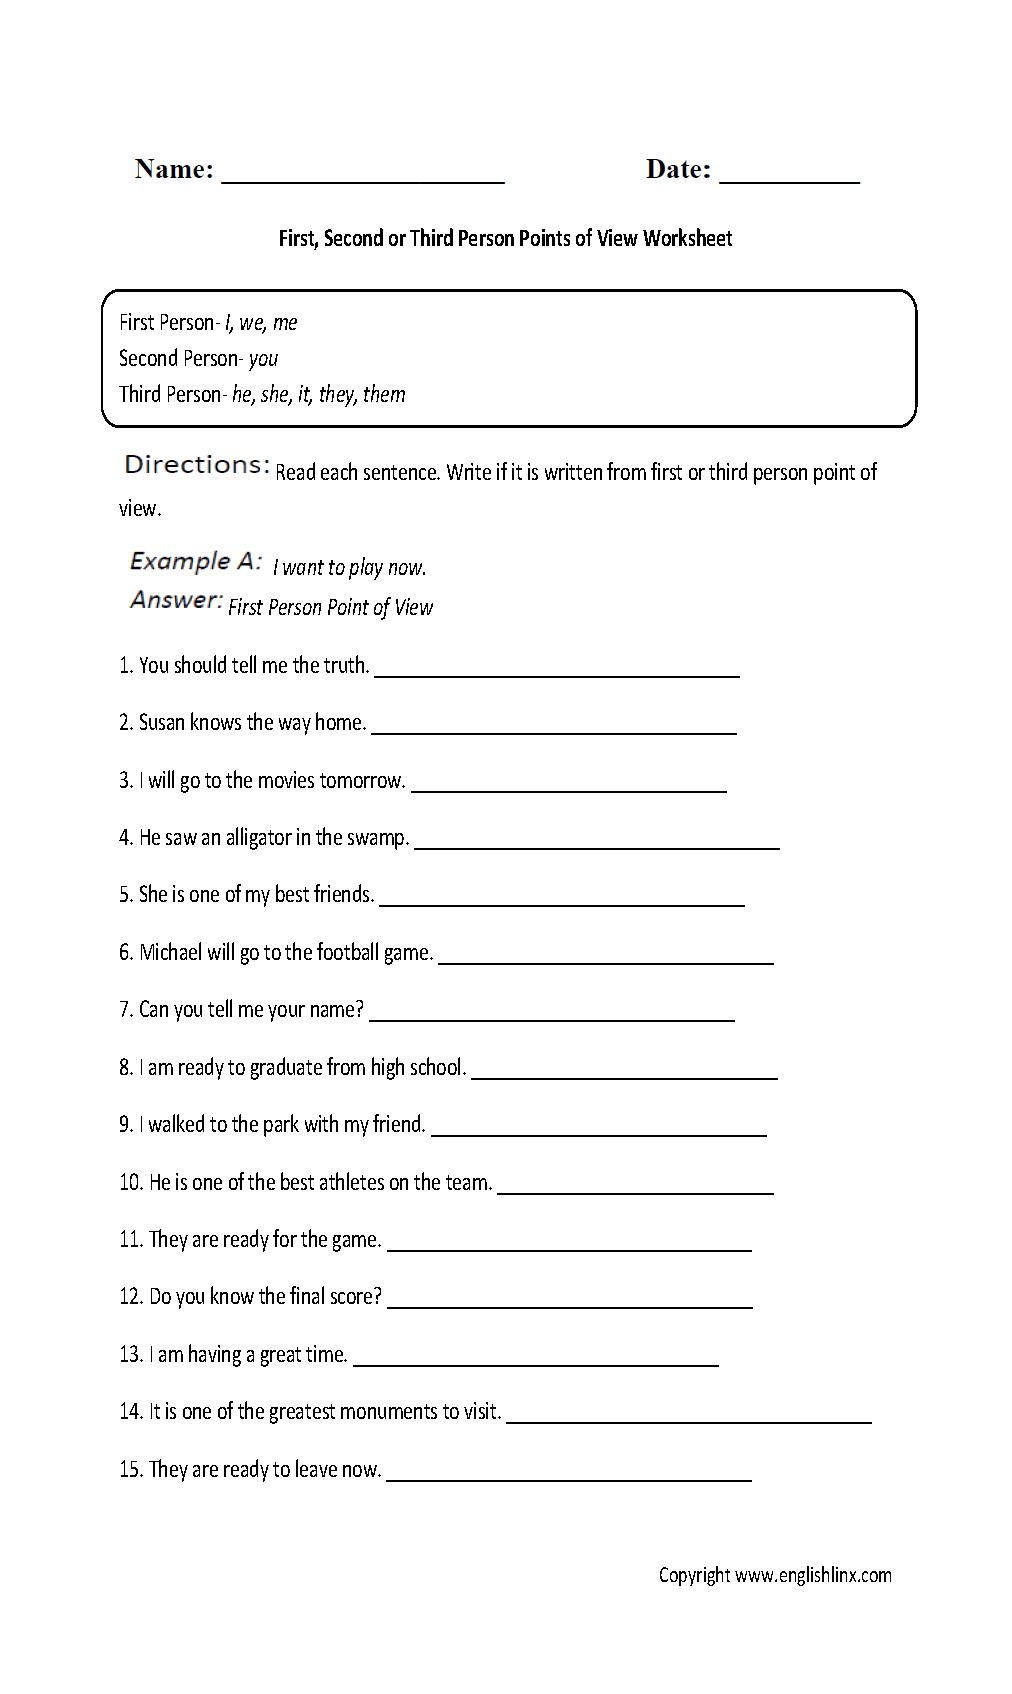 Proatmealus  Unusual Englishlinxcom  Point Of View Worksheets With Fair Point Of View Worksheet With Beauteous English As A Foreign Language Worksheets Also Abc Pattern Worksheet In Addition Muscular System For Kids Worksheets And Oceans Of The World Worksheet As Well As Fraction Worksheet For Grade  Additionally Phonics Worksheets For Esl Students From Englishlinxcom With Proatmealus  Fair Englishlinxcom  Point Of View Worksheets With Beauteous Point Of View Worksheet And Unusual English As A Foreign Language Worksheets Also Abc Pattern Worksheet In Addition Muscular System For Kids Worksheets From Englishlinxcom